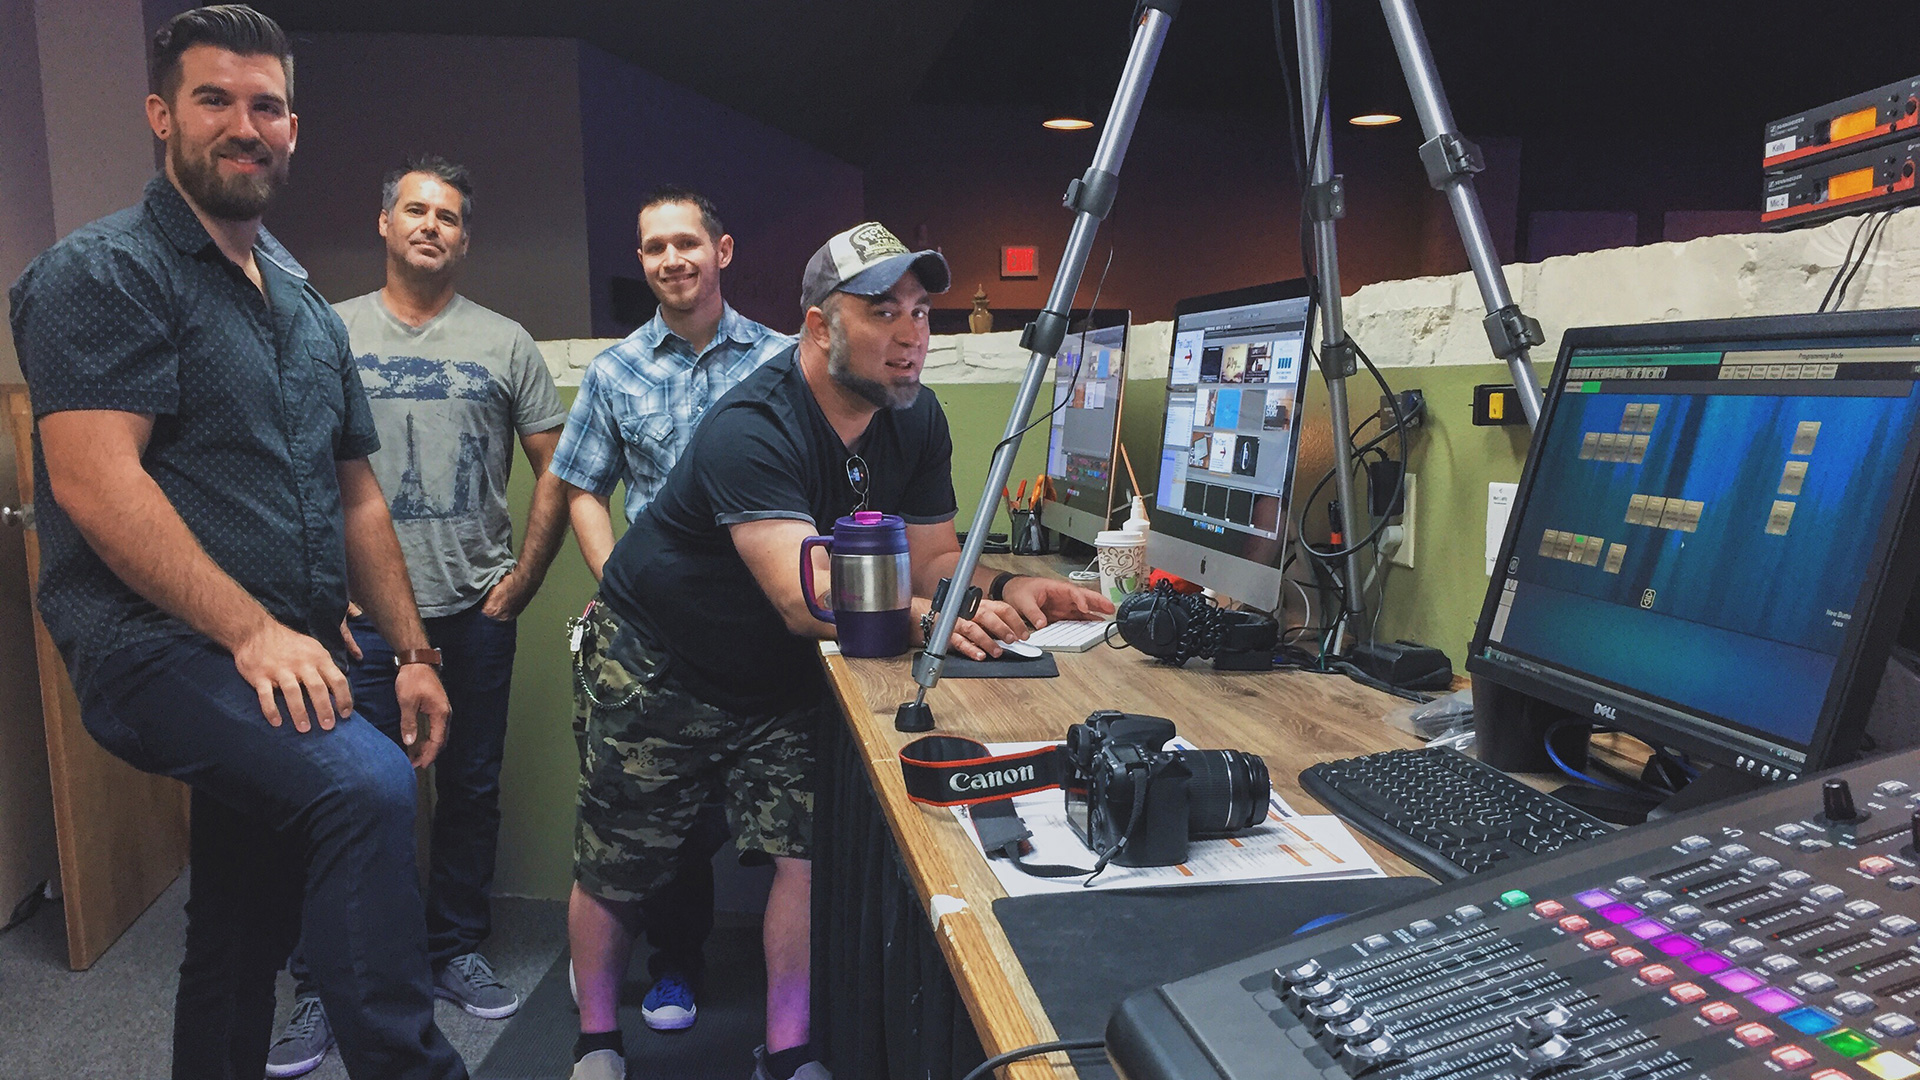 Technical team made up of volunteers operating the Lifehouse Church video management system that includes the Matrox Monarch HDX device.